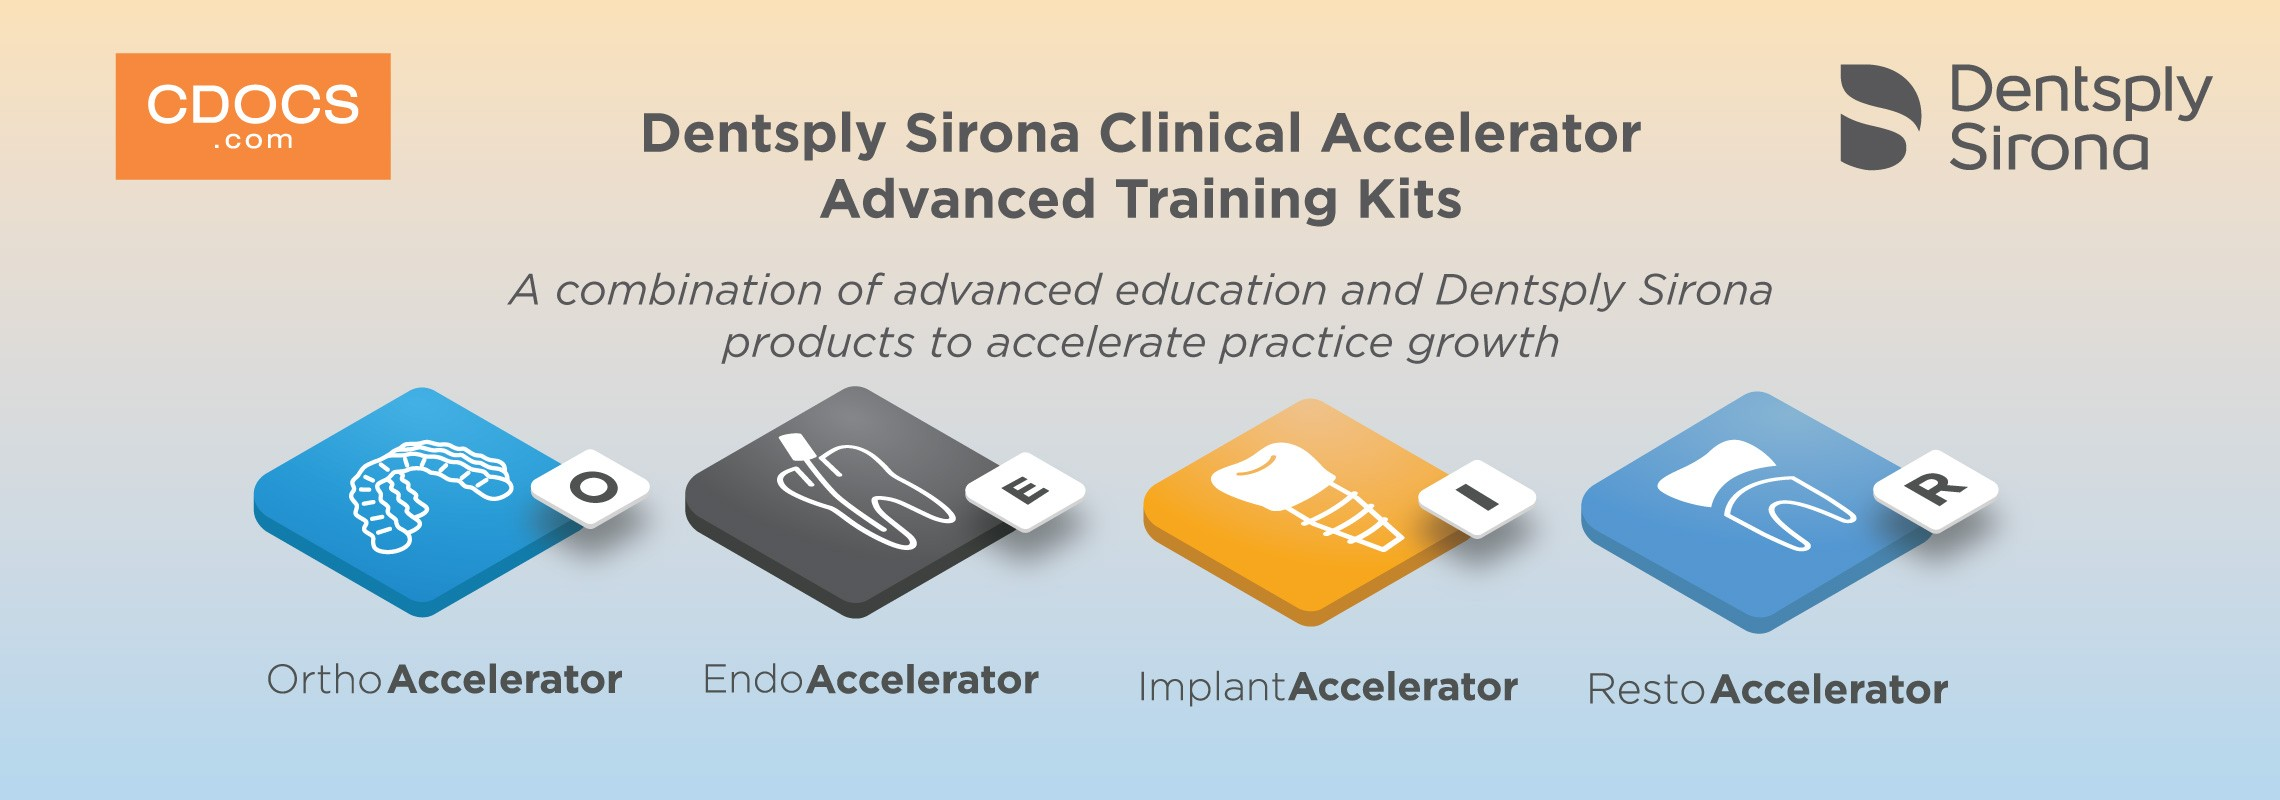 Clinical Accelerator